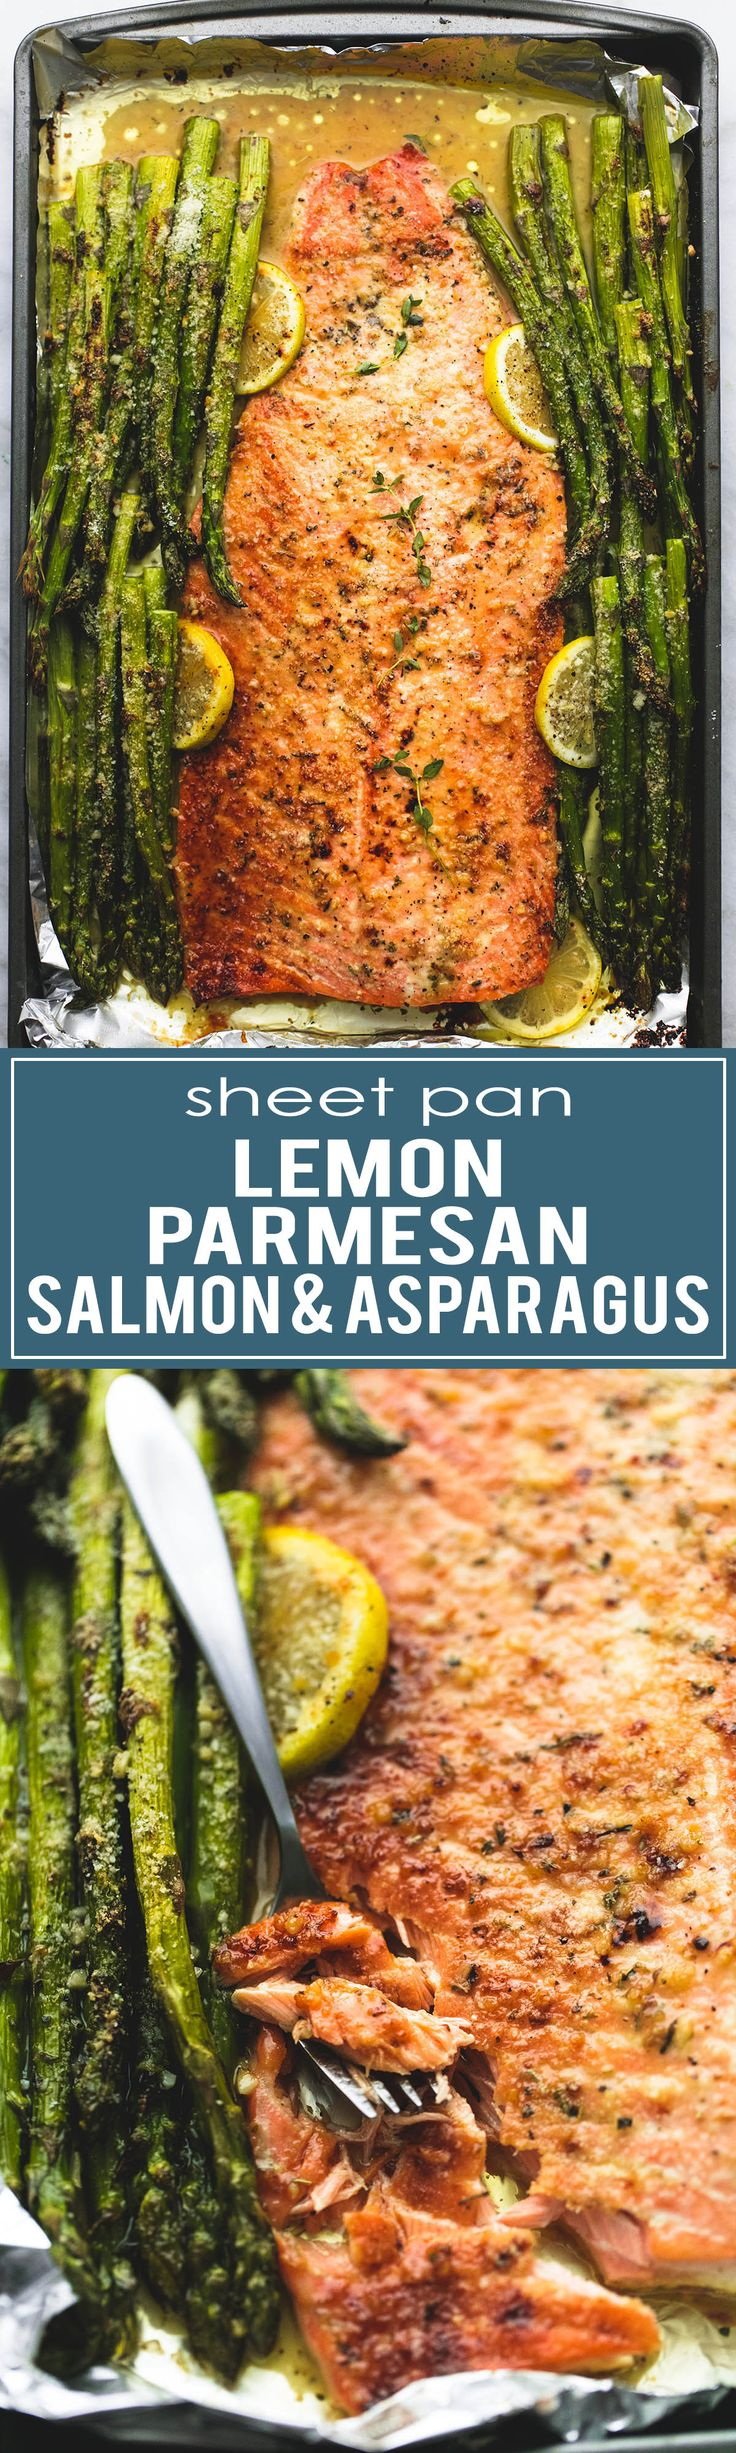 No Bake: Baked Lemon Parmesan Salmon & Asparagus in Foil - ...